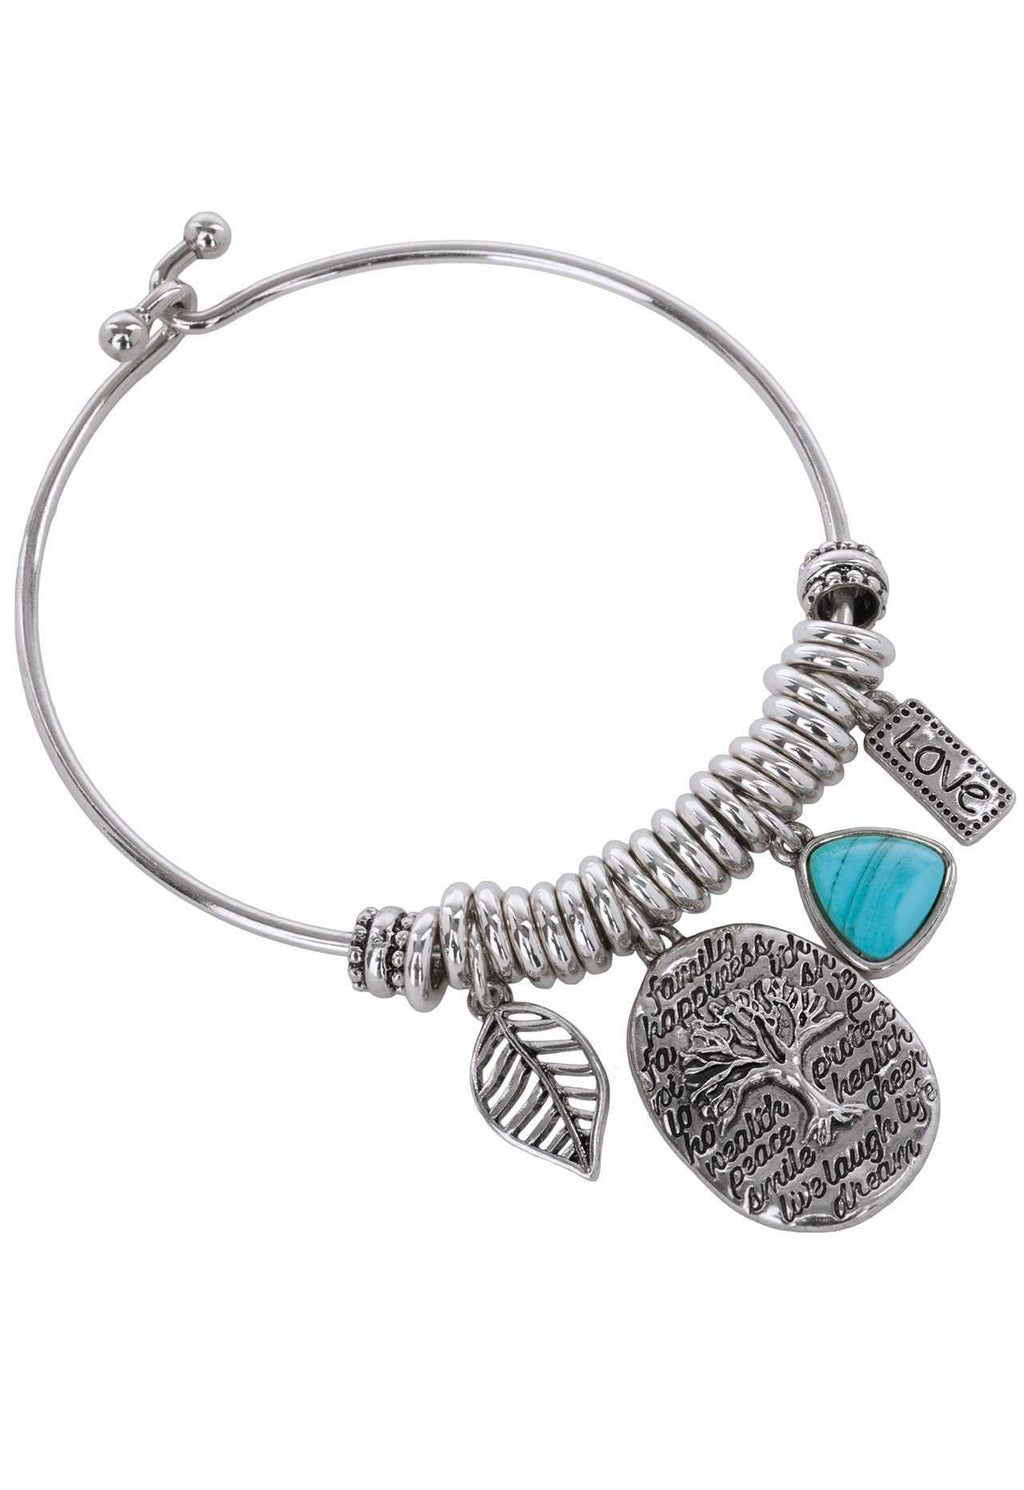 Jewelry - Happiness Charm Bracelet - Silver